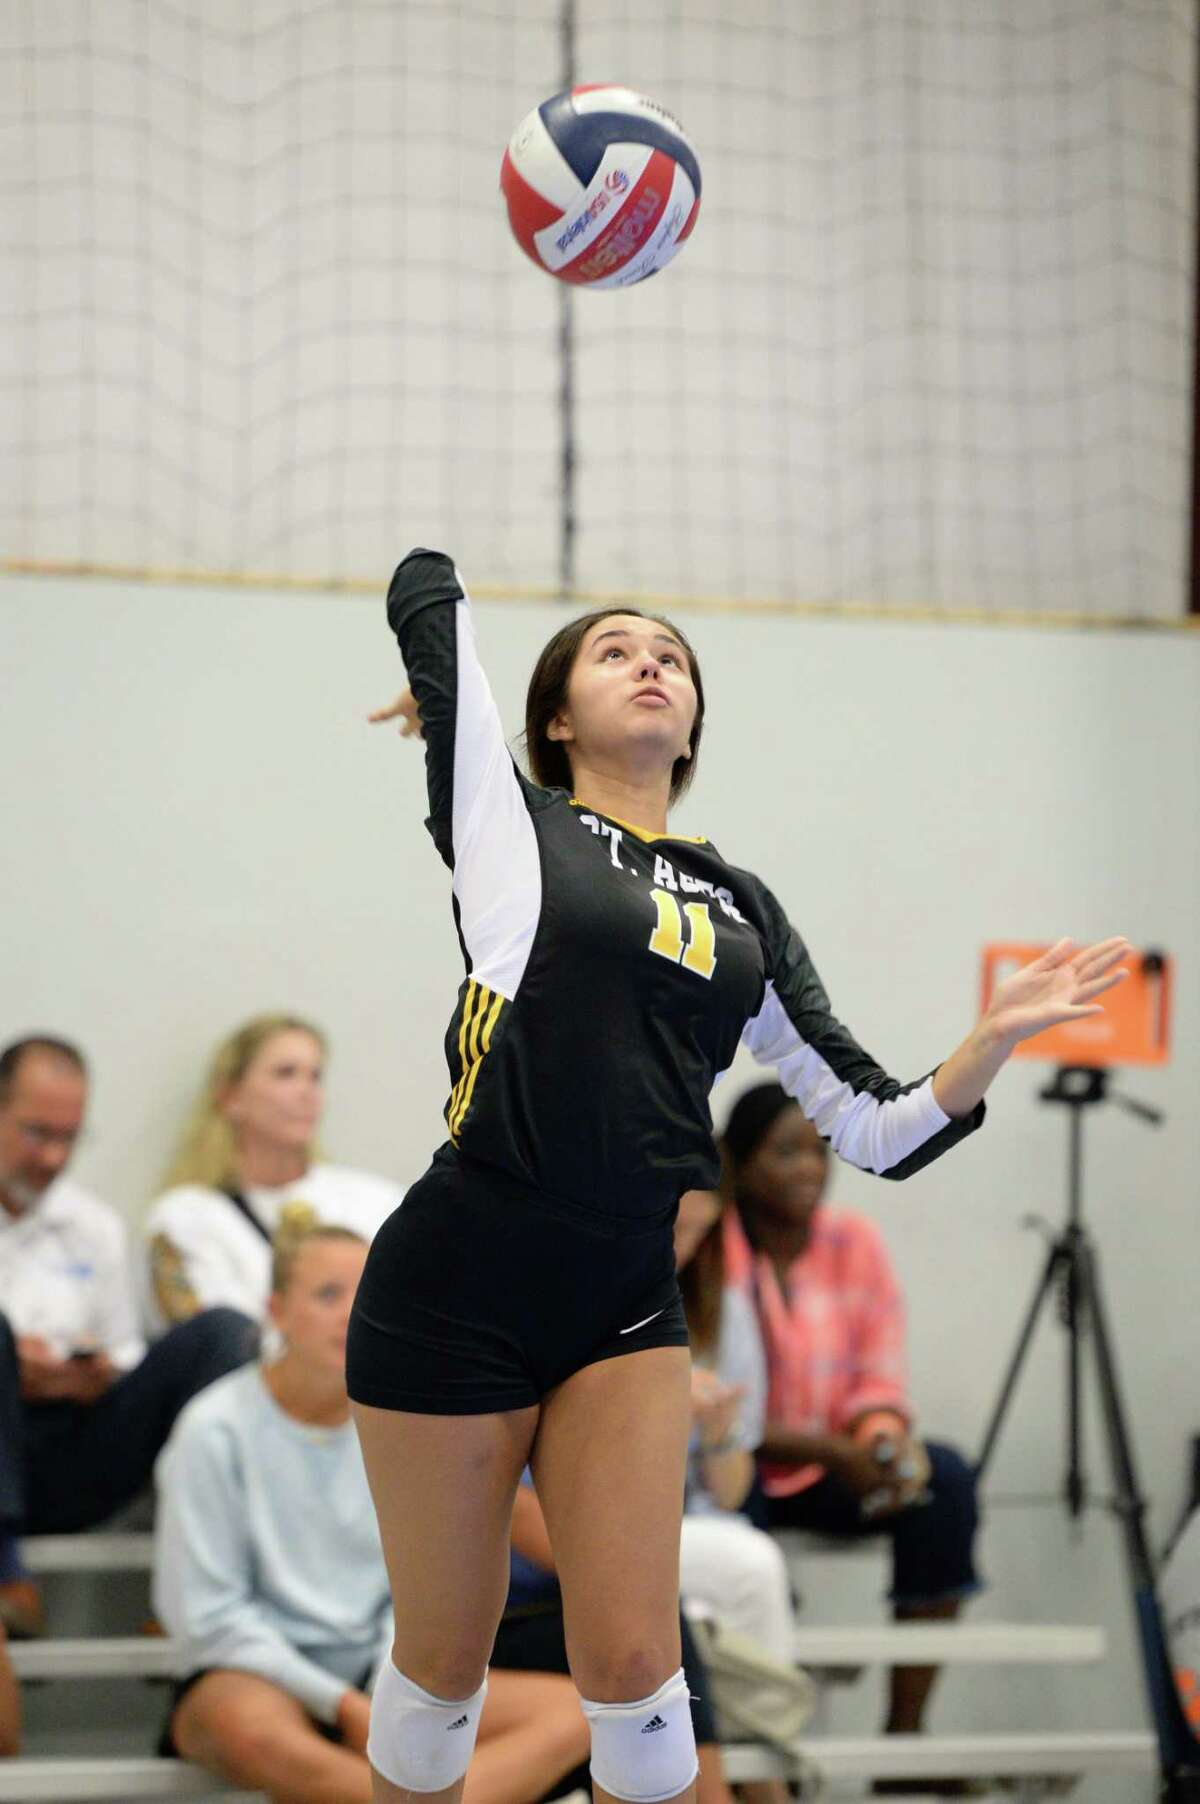 Nicole Dworaczyk (11) of St. Agnes serves during the second set of a volleyball match between the St. Agnes Tigers and the Episcopal Knights JV on Friday, August 23, 2019 at Skyline Juniors, Houston, TX.